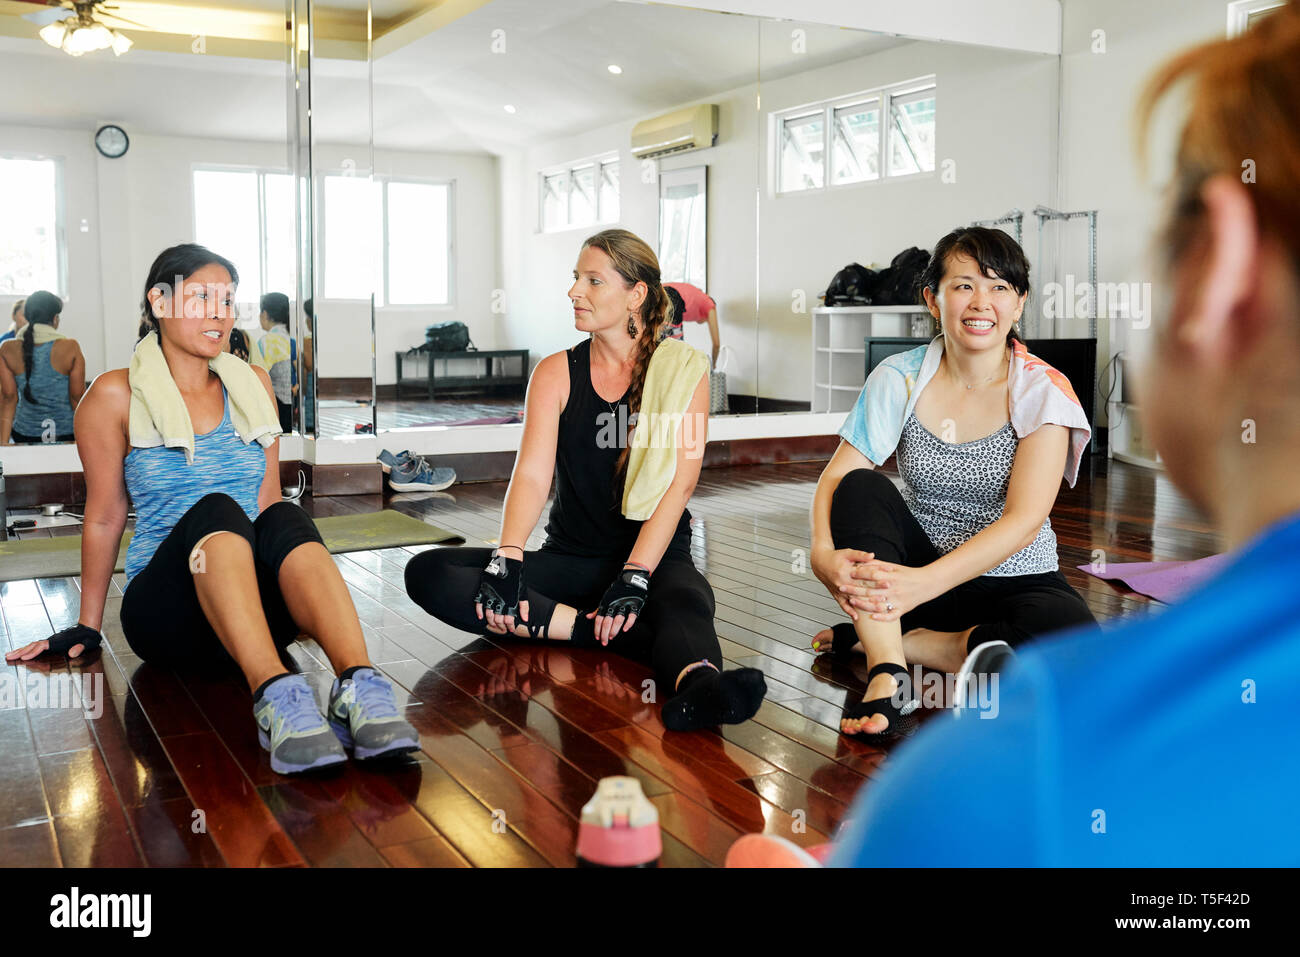 Fitness trainer sharing secrets - Stock Image